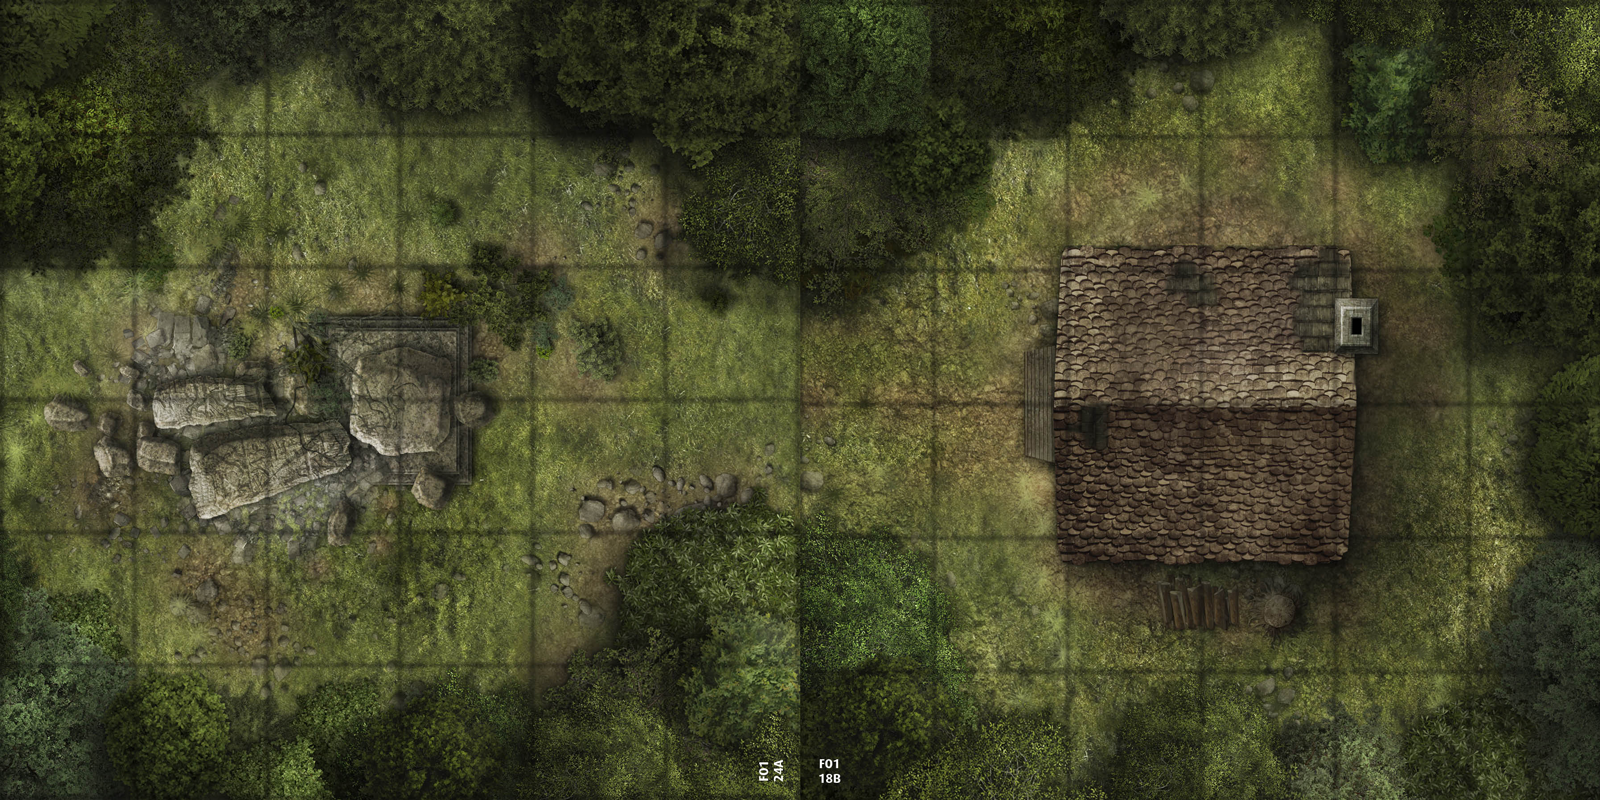 5 x 10 map depicting a small clearing full of a ruined shrine in front of a small hut in the woods